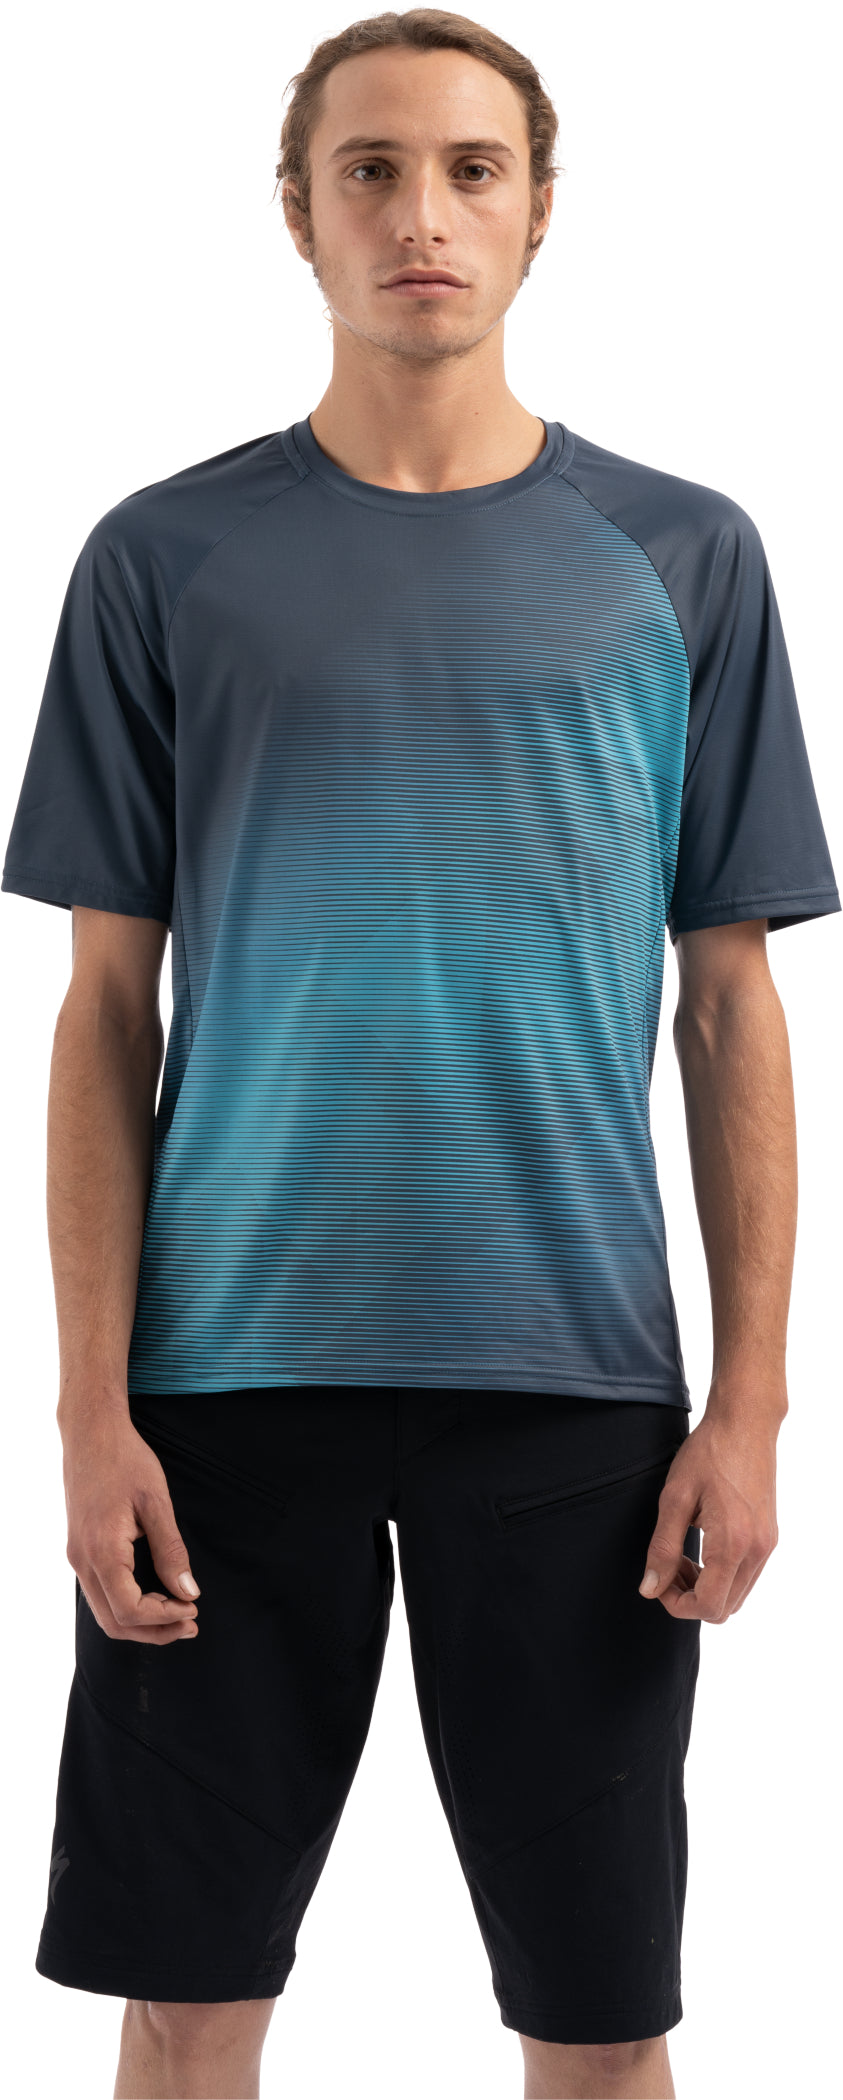 Enduro Air Short Sleeve Jersey